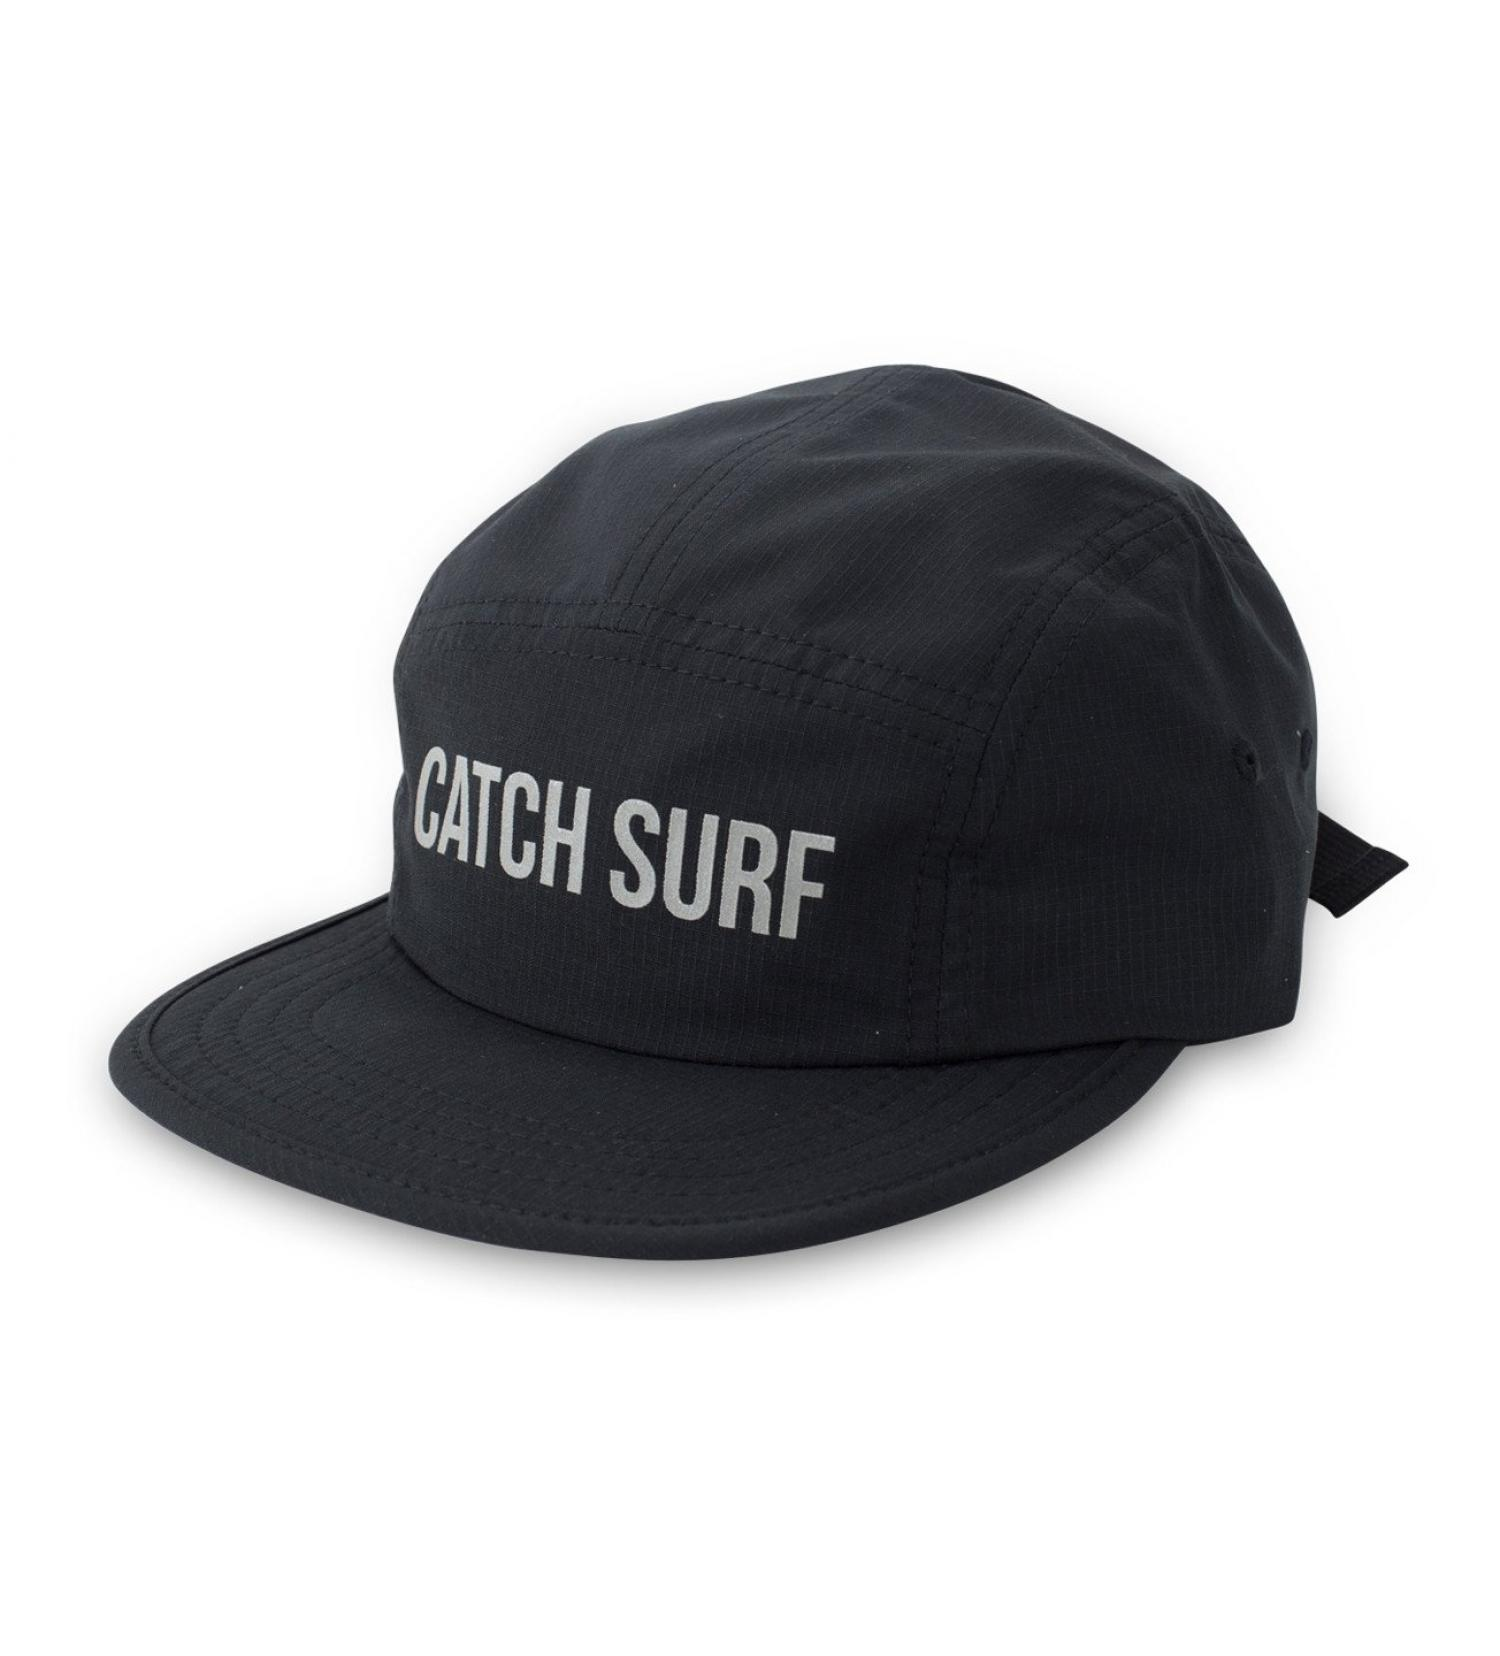 CATCH SURF SHORES SURF CAP